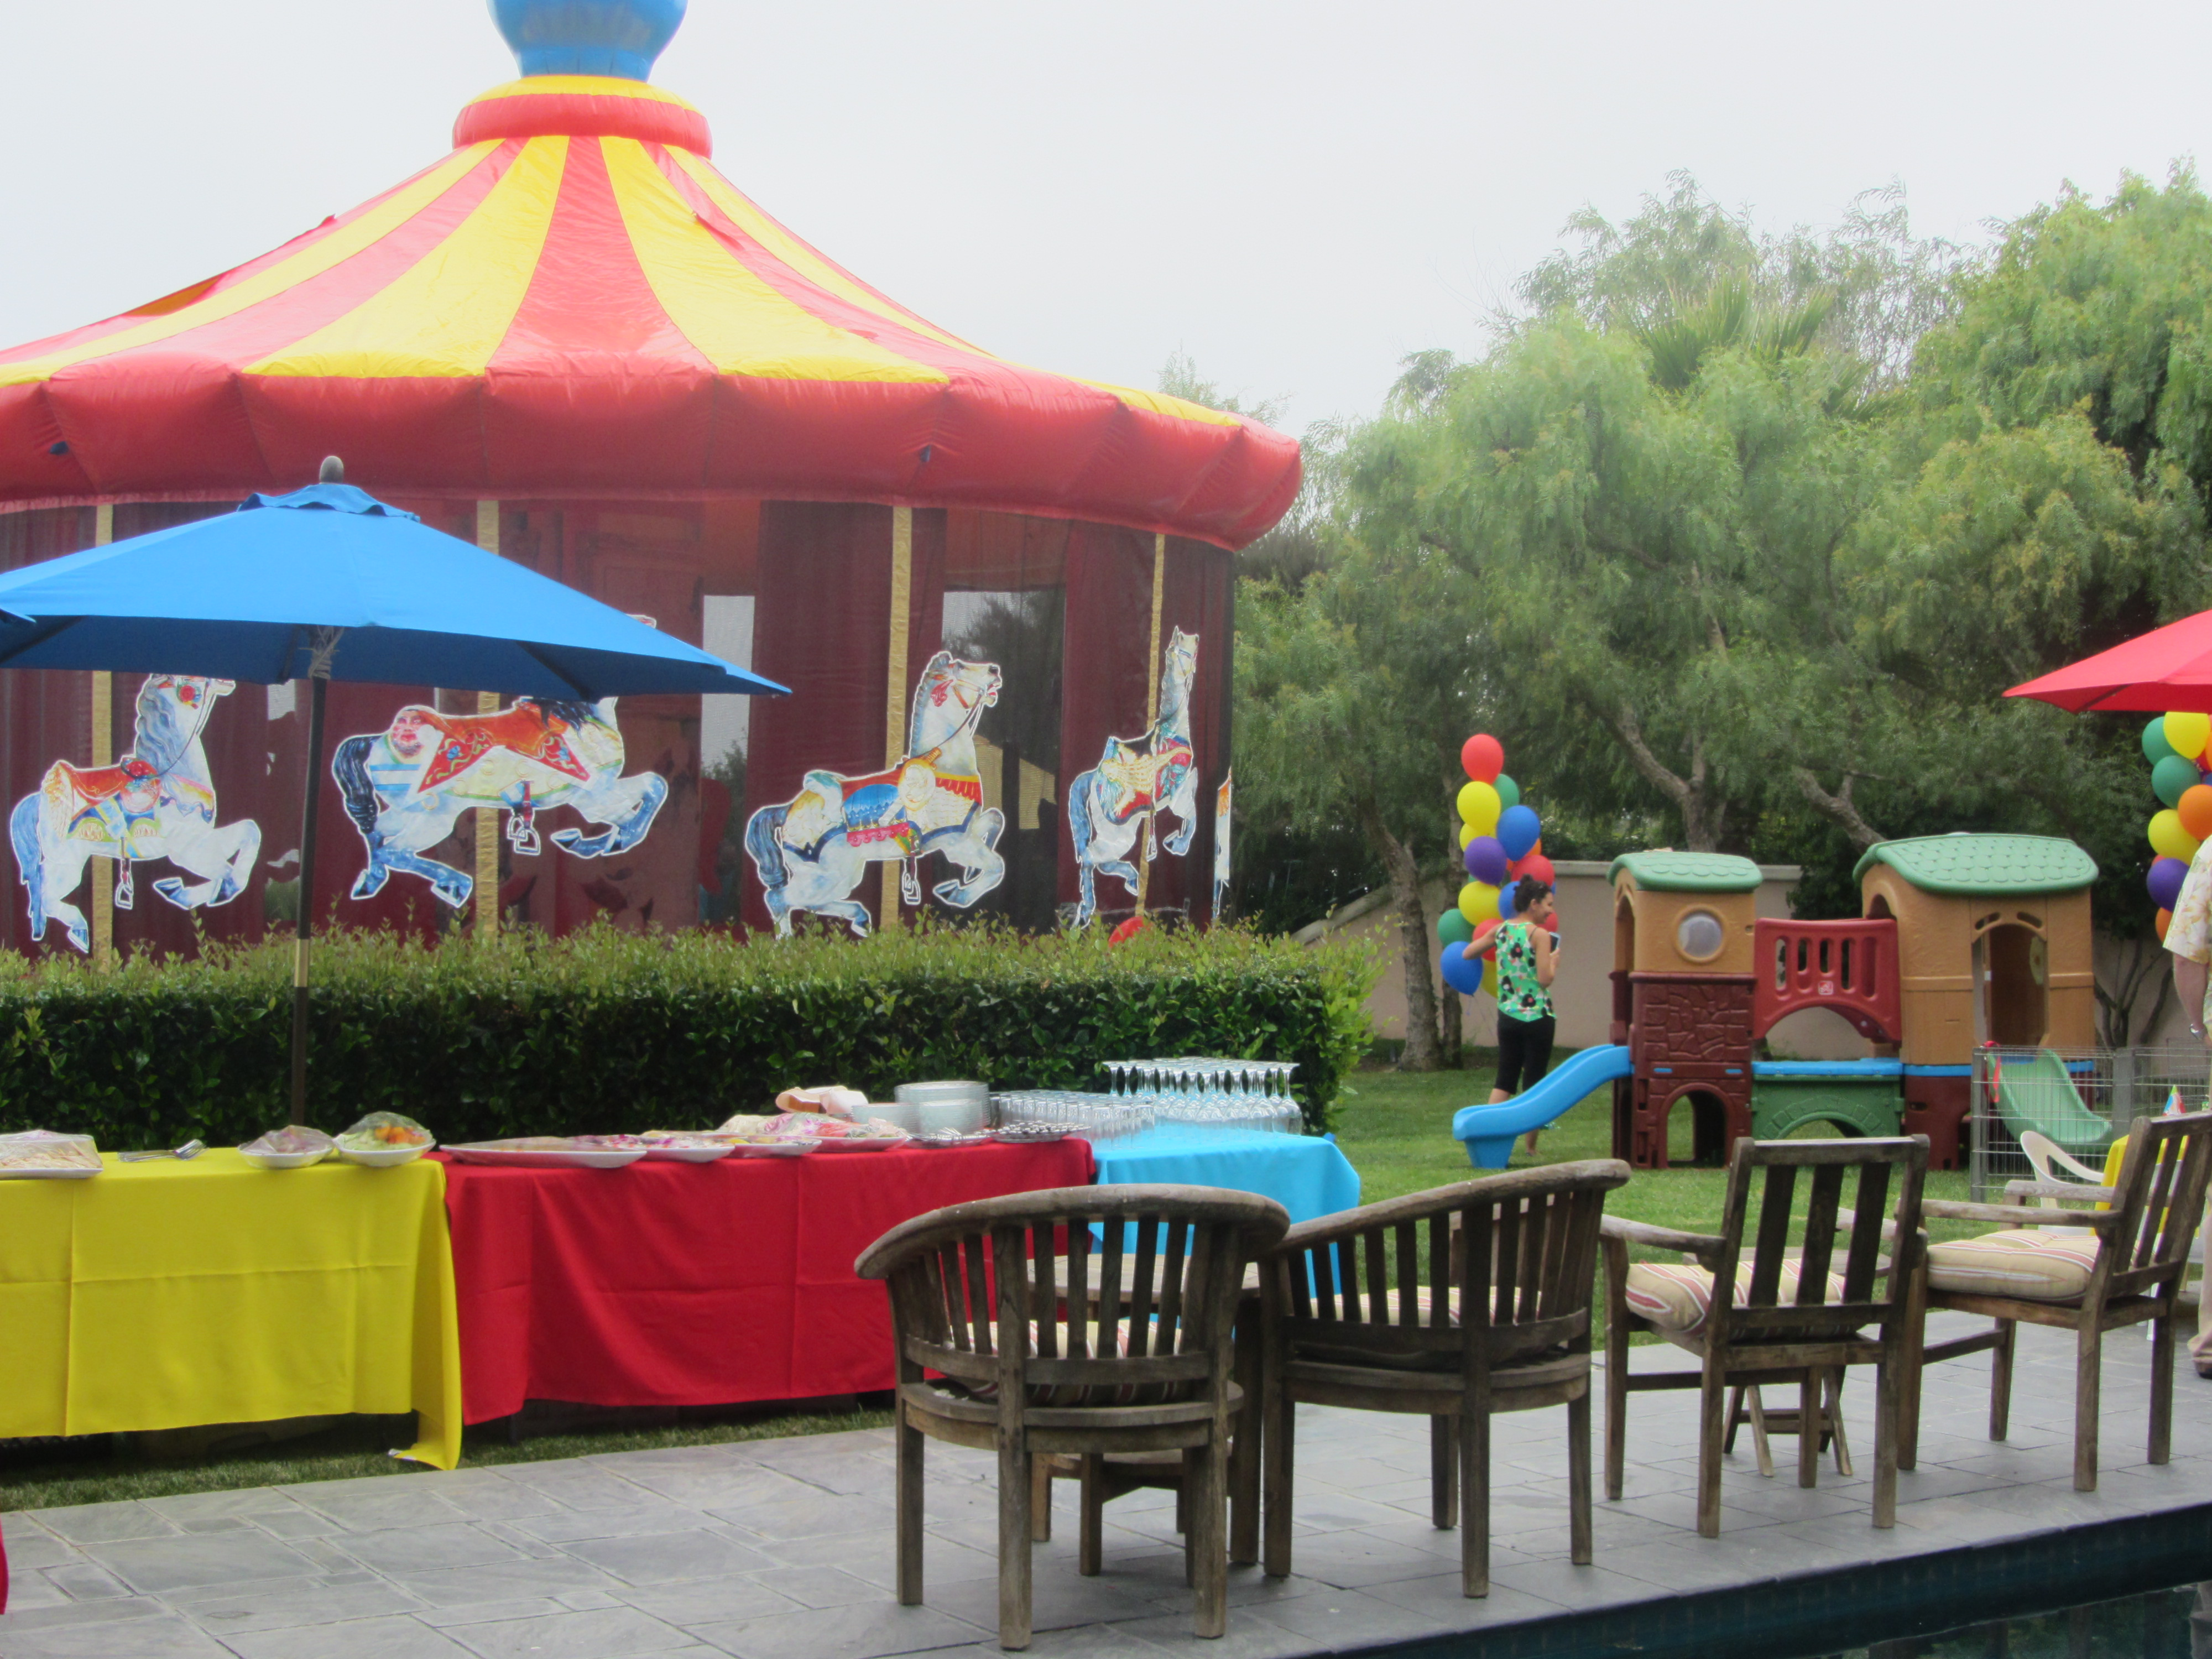 Birthday Party Venue Rental Los Angeles Image Inspiration of